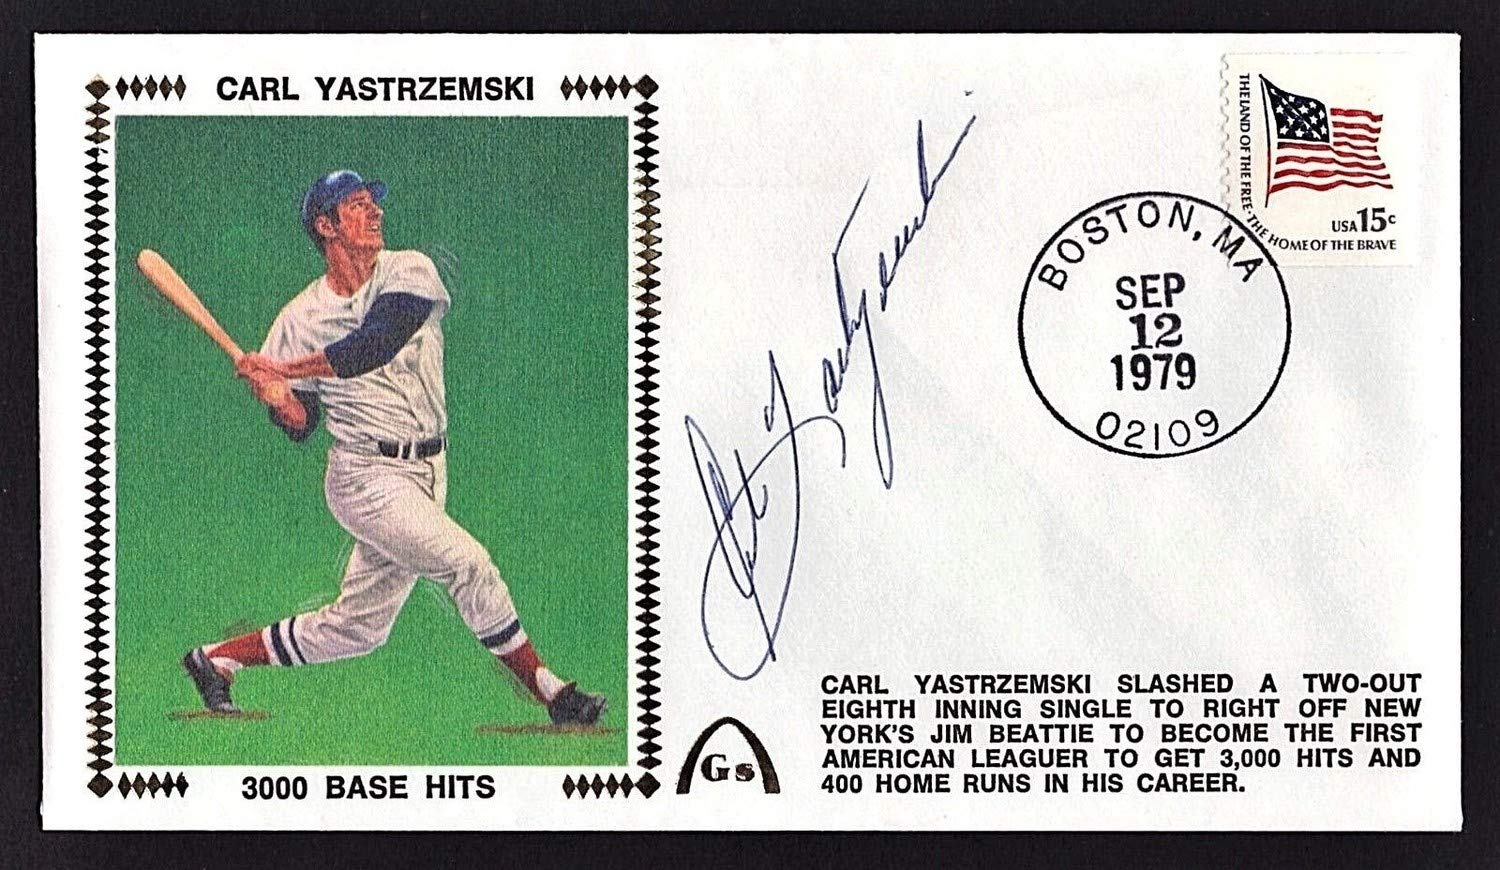 Carl Yastrzemski Autographed Signed Gateway Envelope 3000 Base Hits Beckett Coa